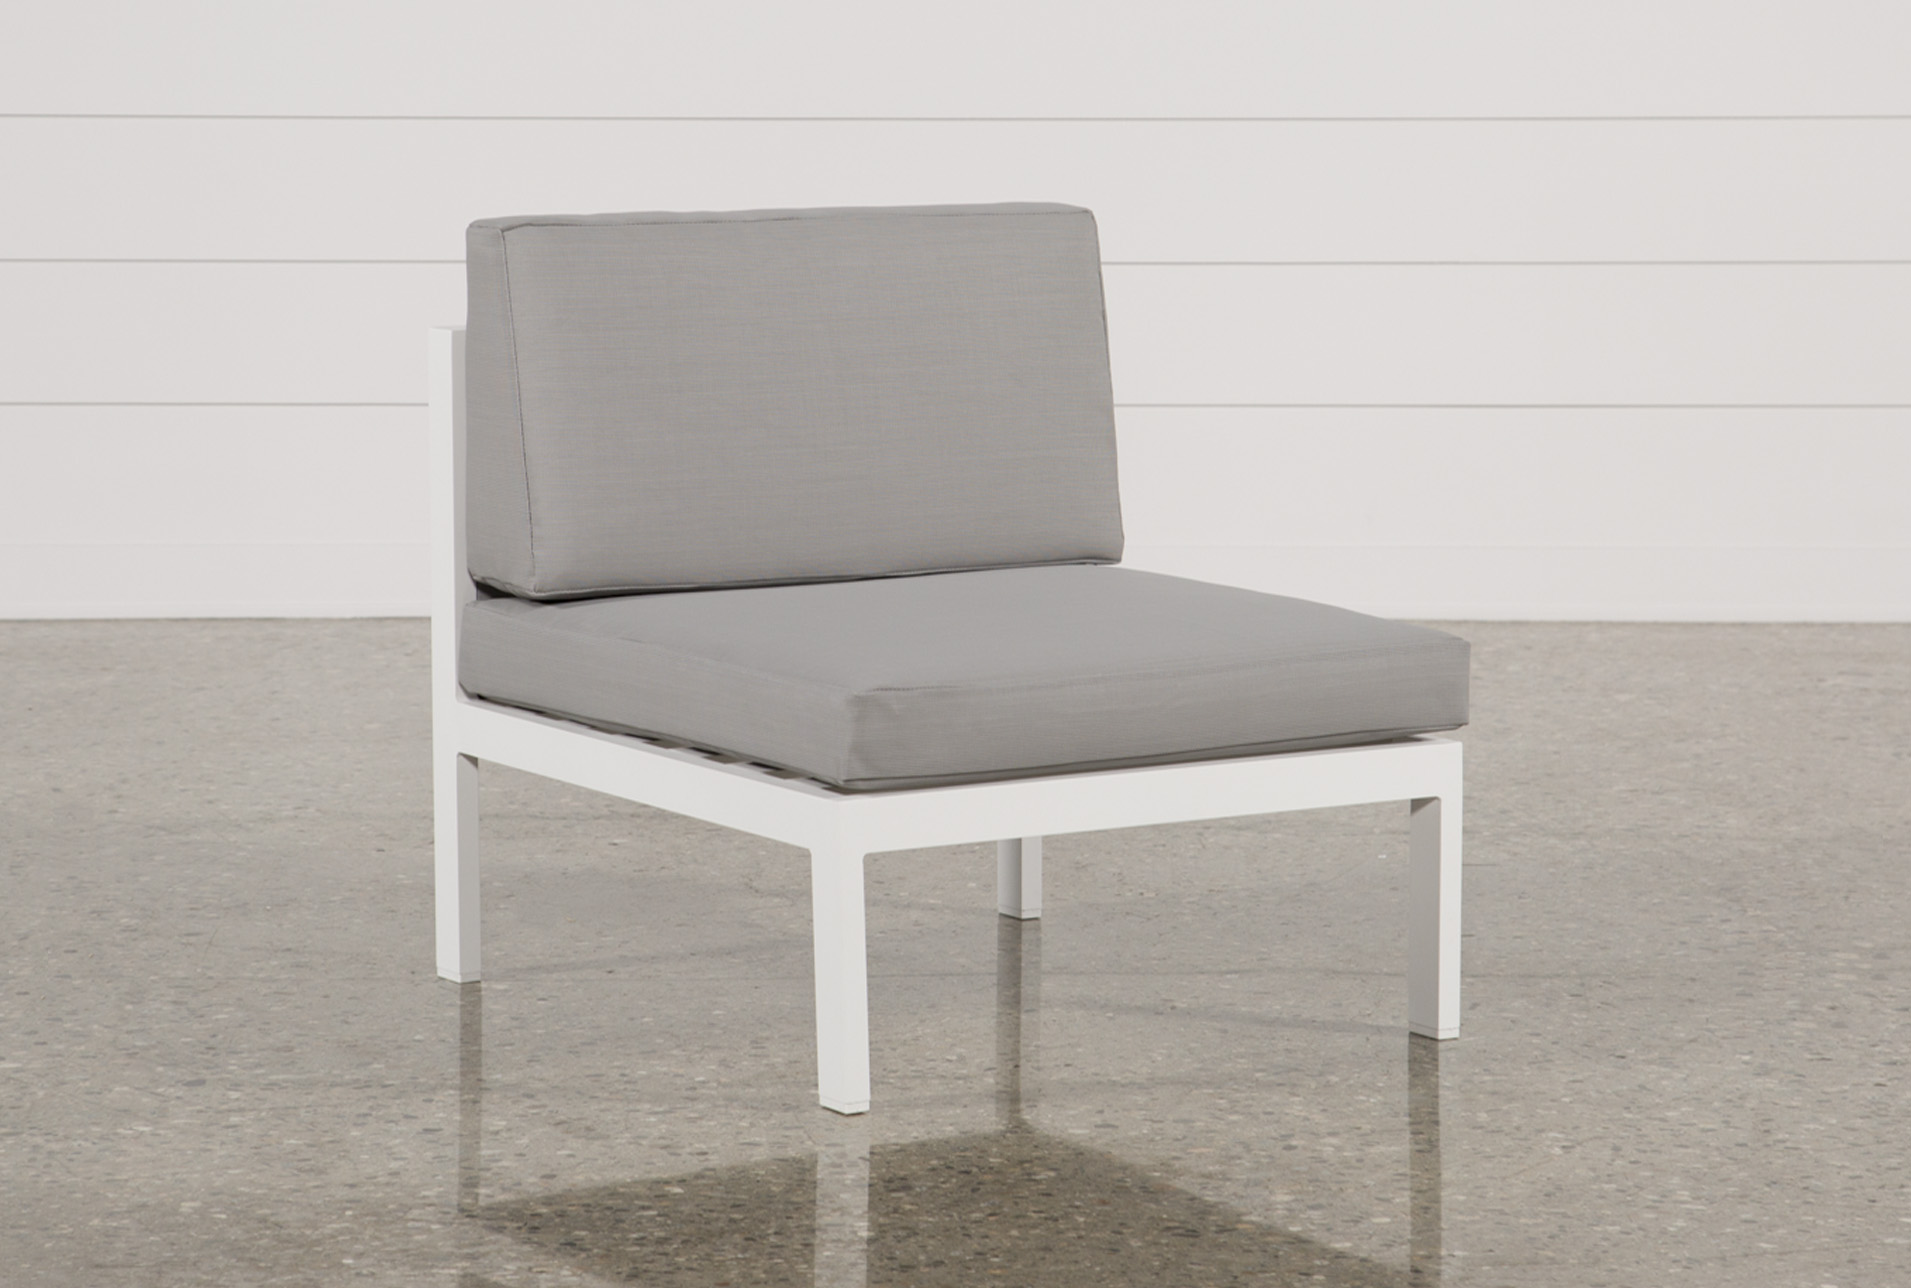 Beau Outdoor Biscayne Armless Chair   360